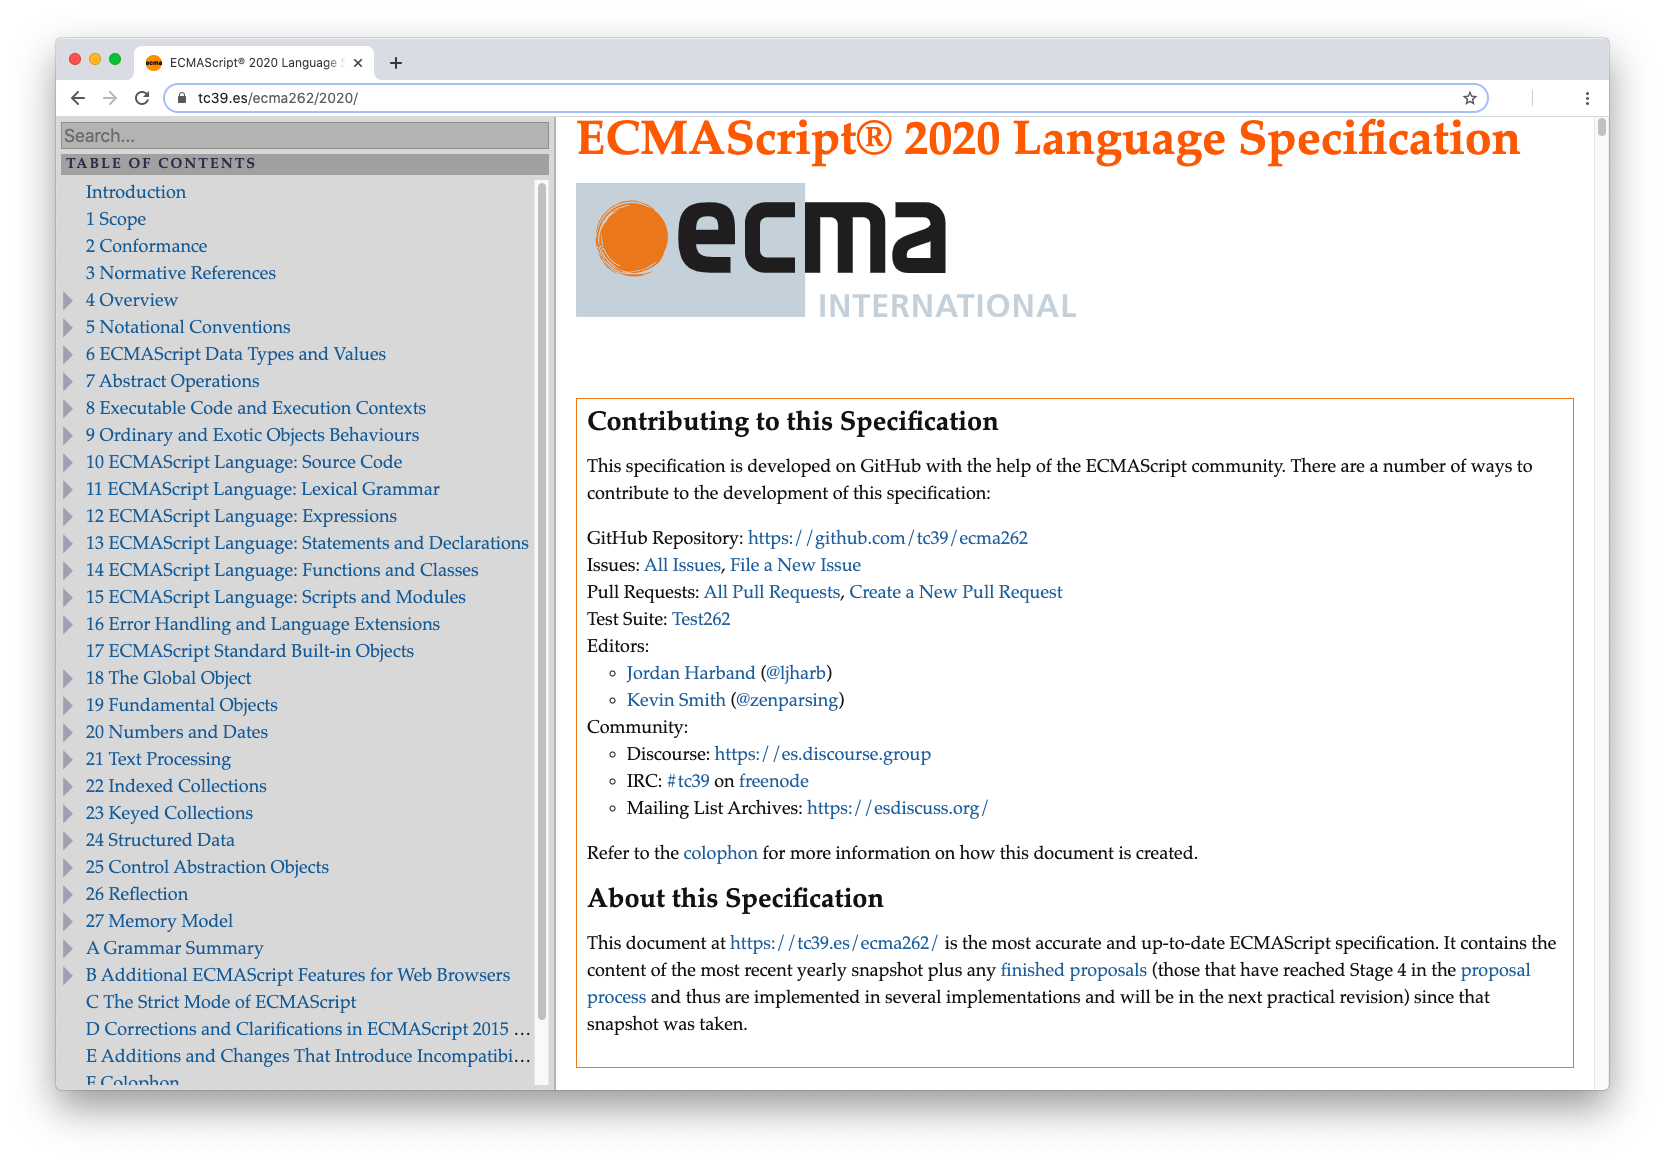 ES2020 Language Specification